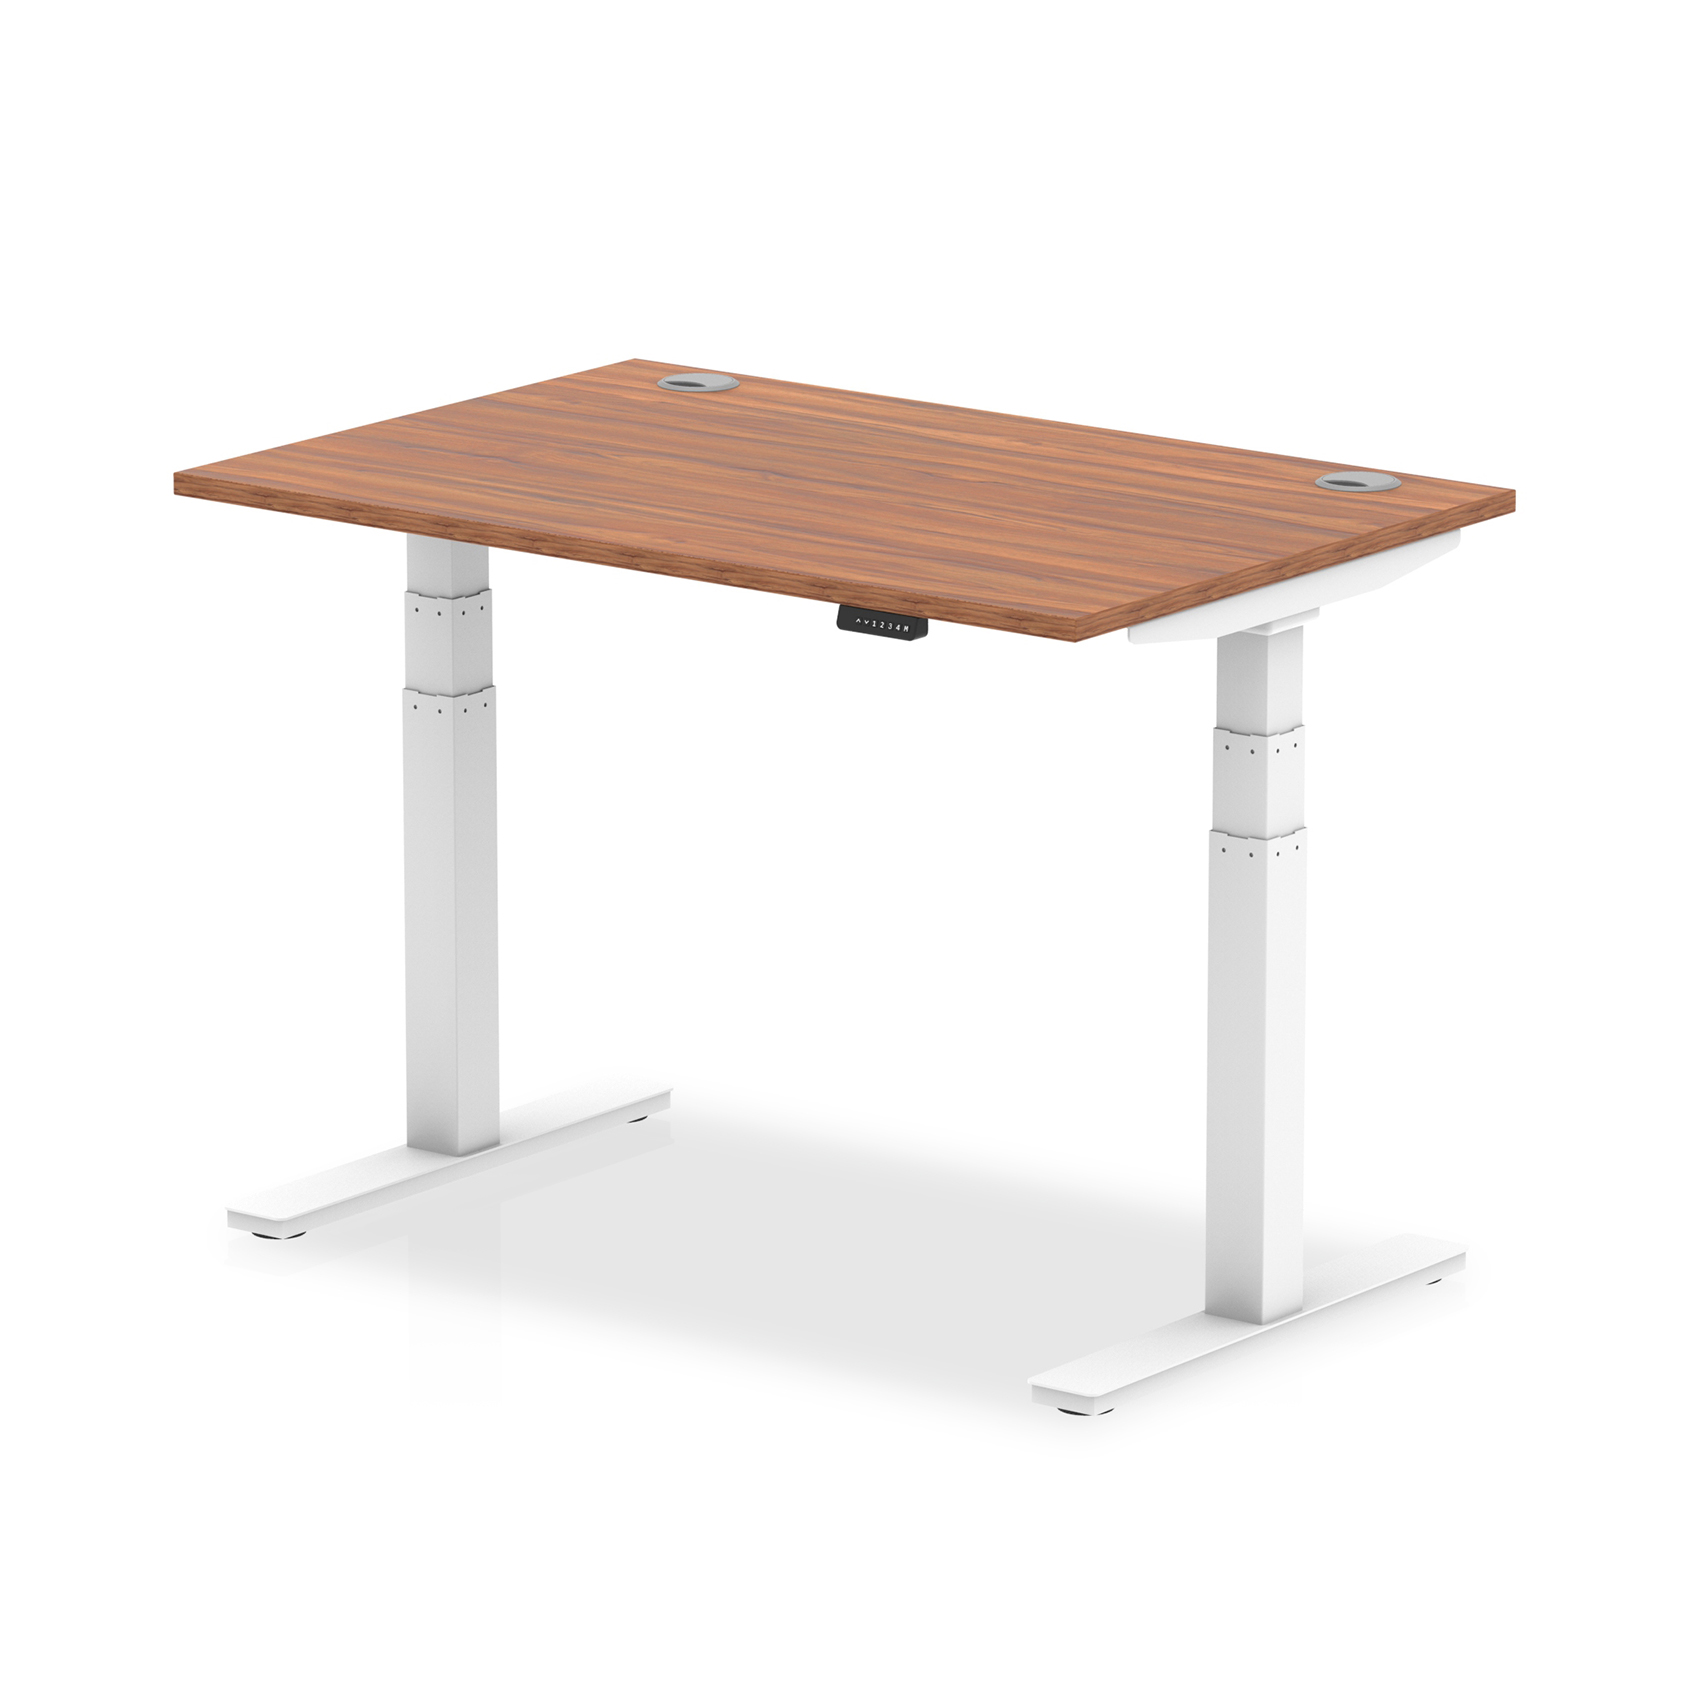 Trexus Sit Stand Desk With Cable Ports White Legs 1200x800mm Walnut Ref HA01105